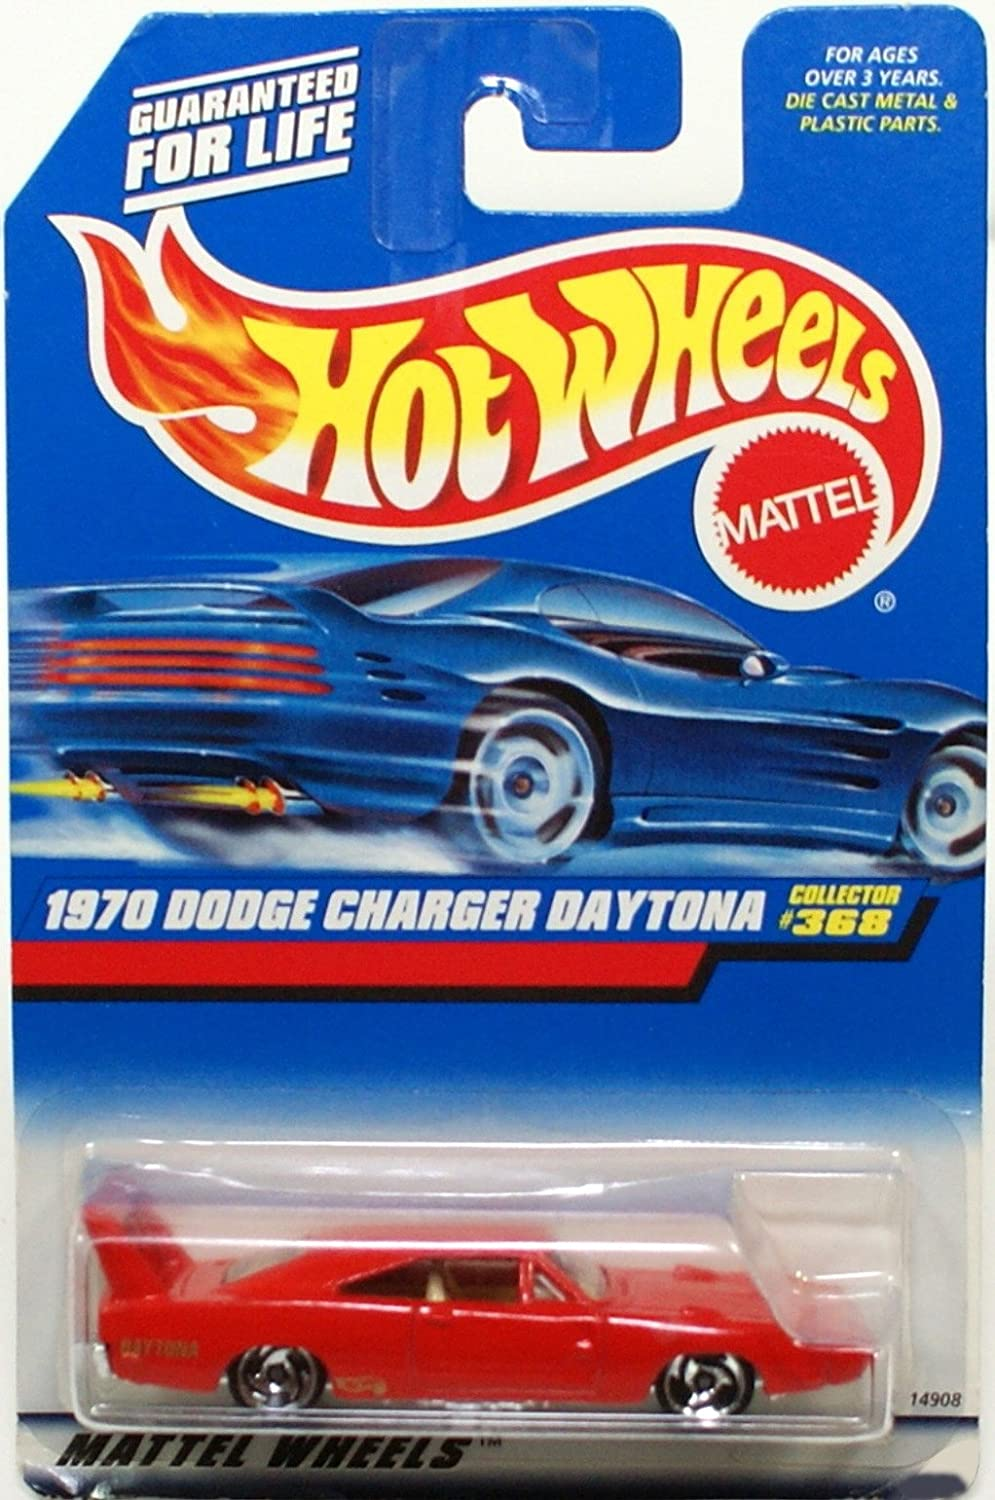 Mattel Hot Wheels 1998 1 64 Scale Red 1970 Dodge Charger Daytona Die Cast Car Collector  368